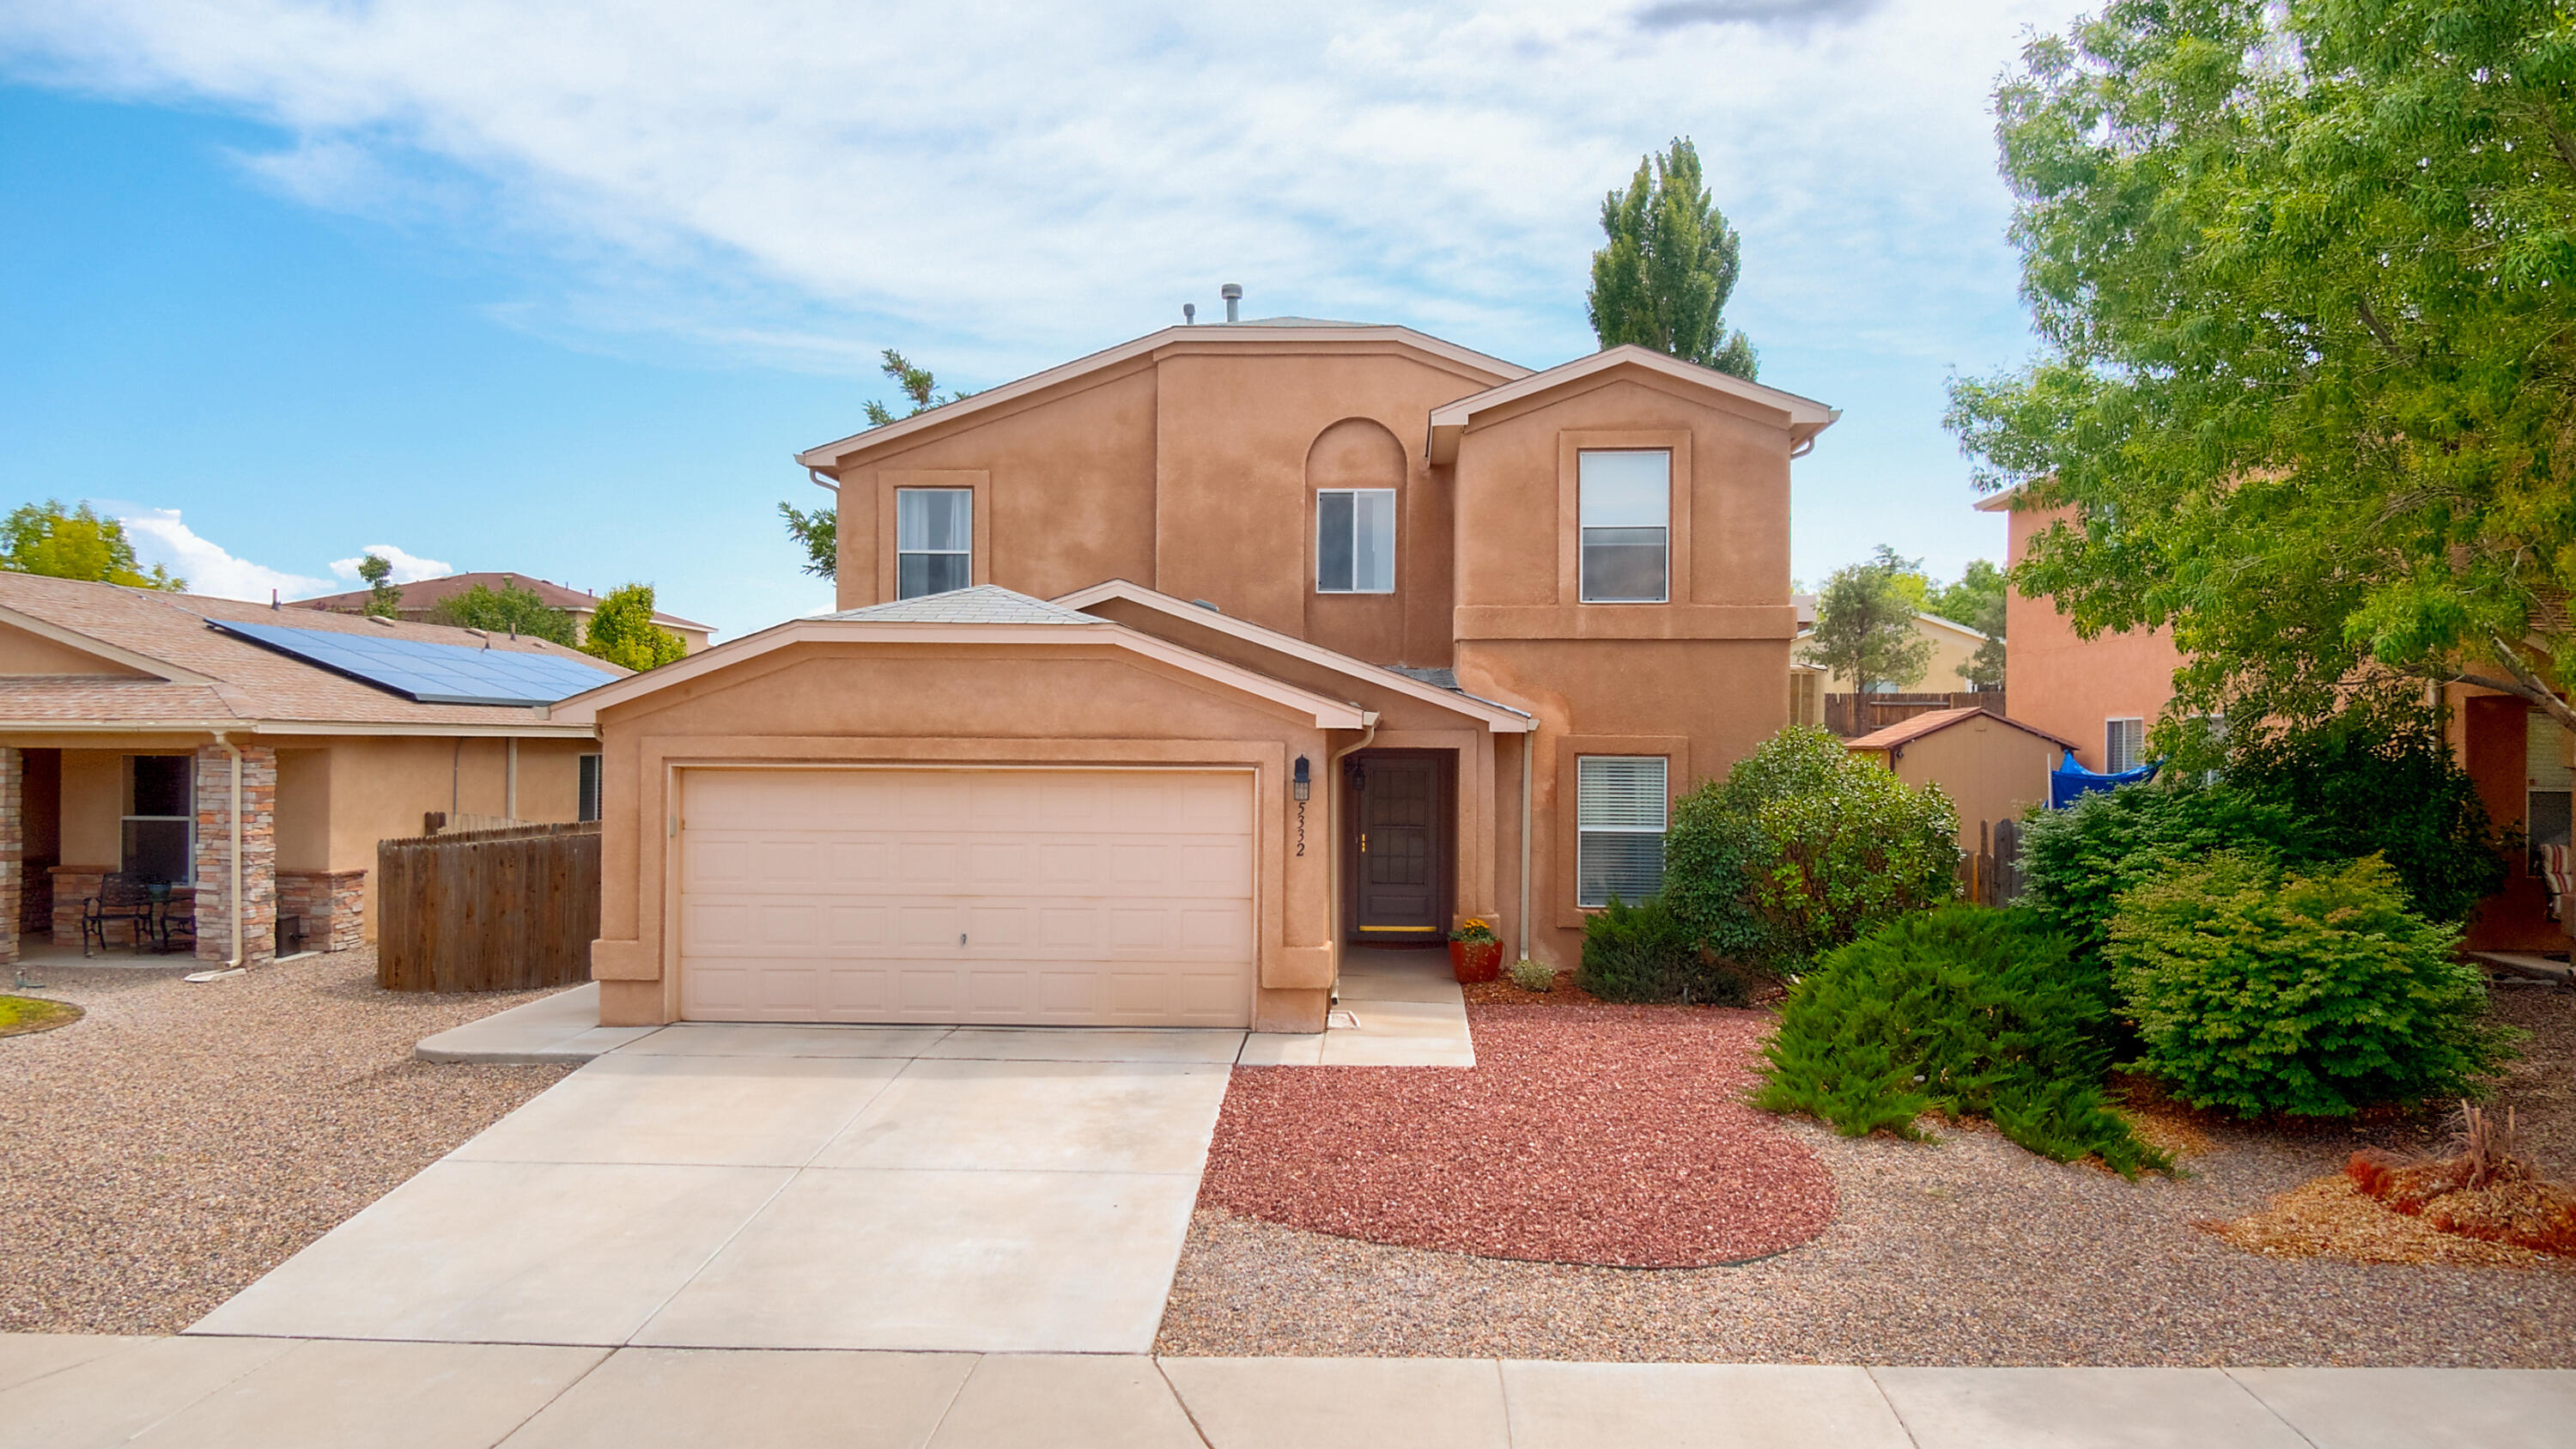 Stunning 2 story home in Stonebridge. Many updates & immaculately taken care of. There are 2 parks within the subdivision including a community pool for summer fun!  One bedroom and full bath downstairs for multi-generational living. Kitchen has been updated with quartz counter-tops, granite sink & newer appliances. Home has been converted to AC. Seamless gutters & downspouts were installed 2002,new tile  2021 in 2 bathrooms, laminate floors, low flow (tall) one piece toilets.  Driveway & sidewalk were  replaced. Roof was replaced in 2005. New water heater 2012. Close to shopping, restaurants and hospital.Don't miss this wonderful home with a beautiful yard to relax in.